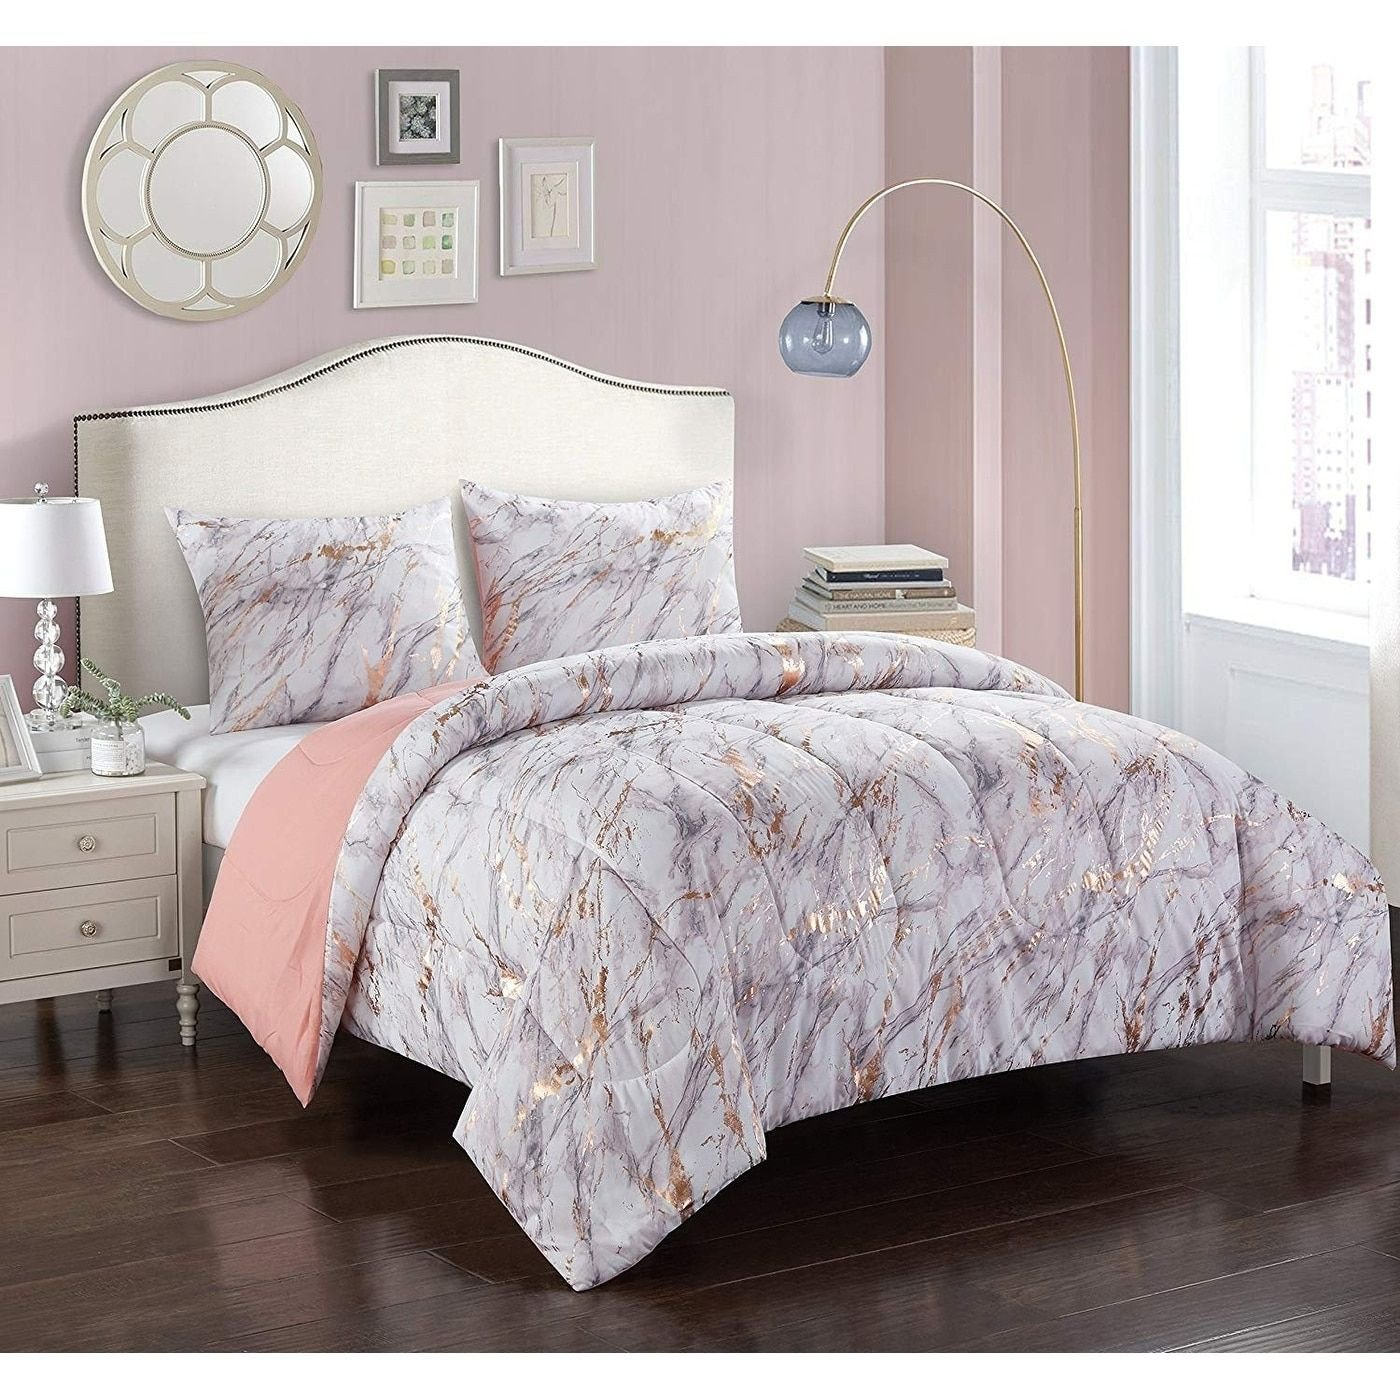 Grey and Gold Bedroom Ideas Beautiful Rose Gold and Marble forter Set Twin Pink Pop Shop